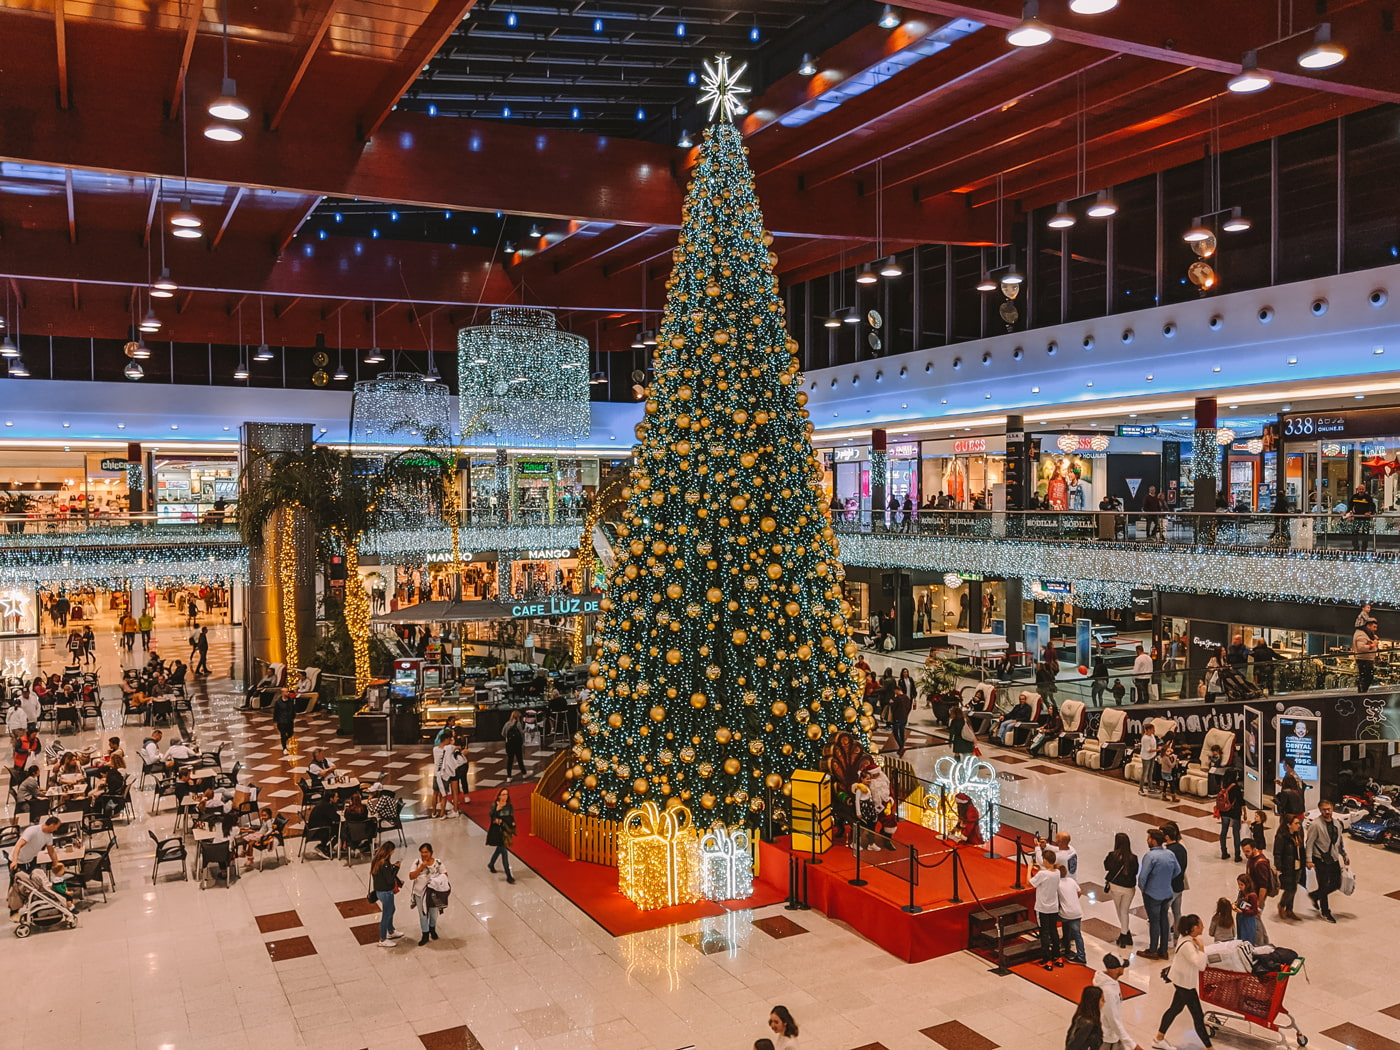 Christmas shopping in Spain